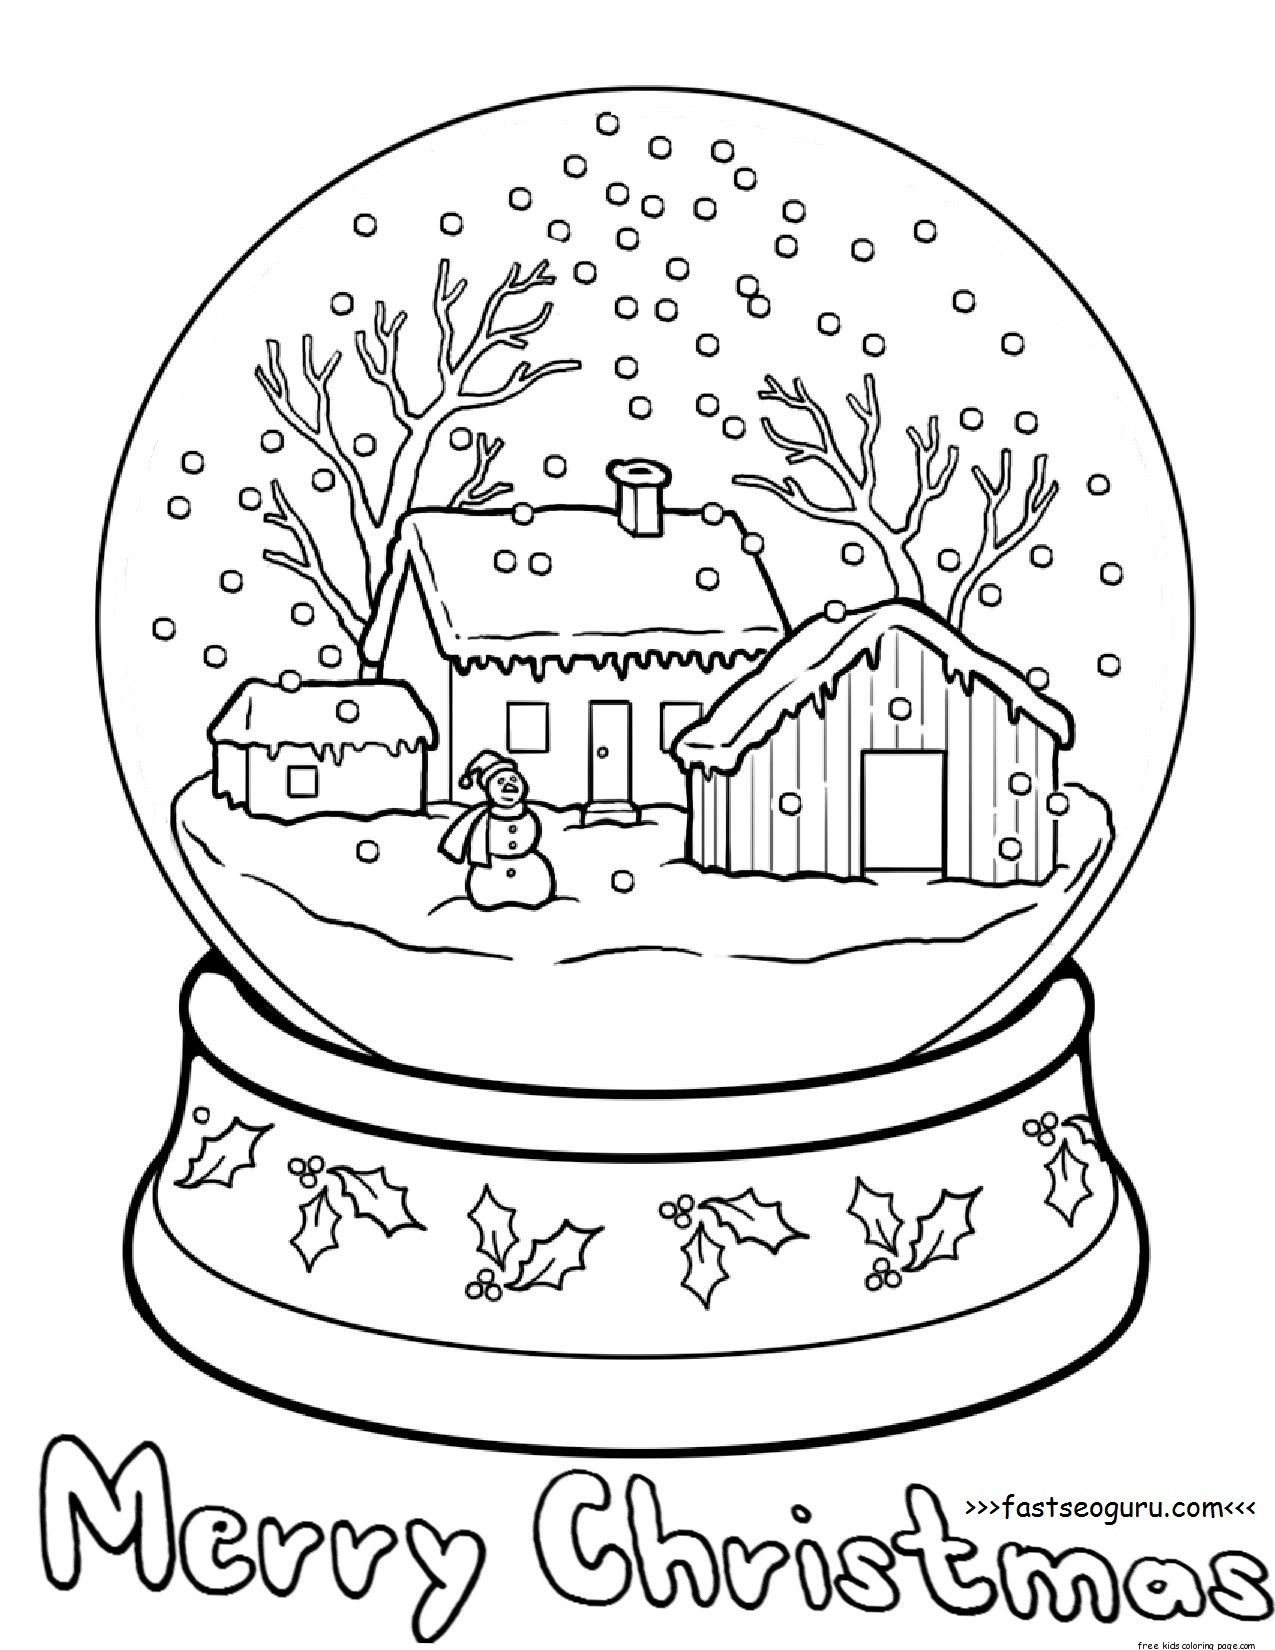 Christmas Globe Coloring Pages With Page Cmscorpion Pinterest